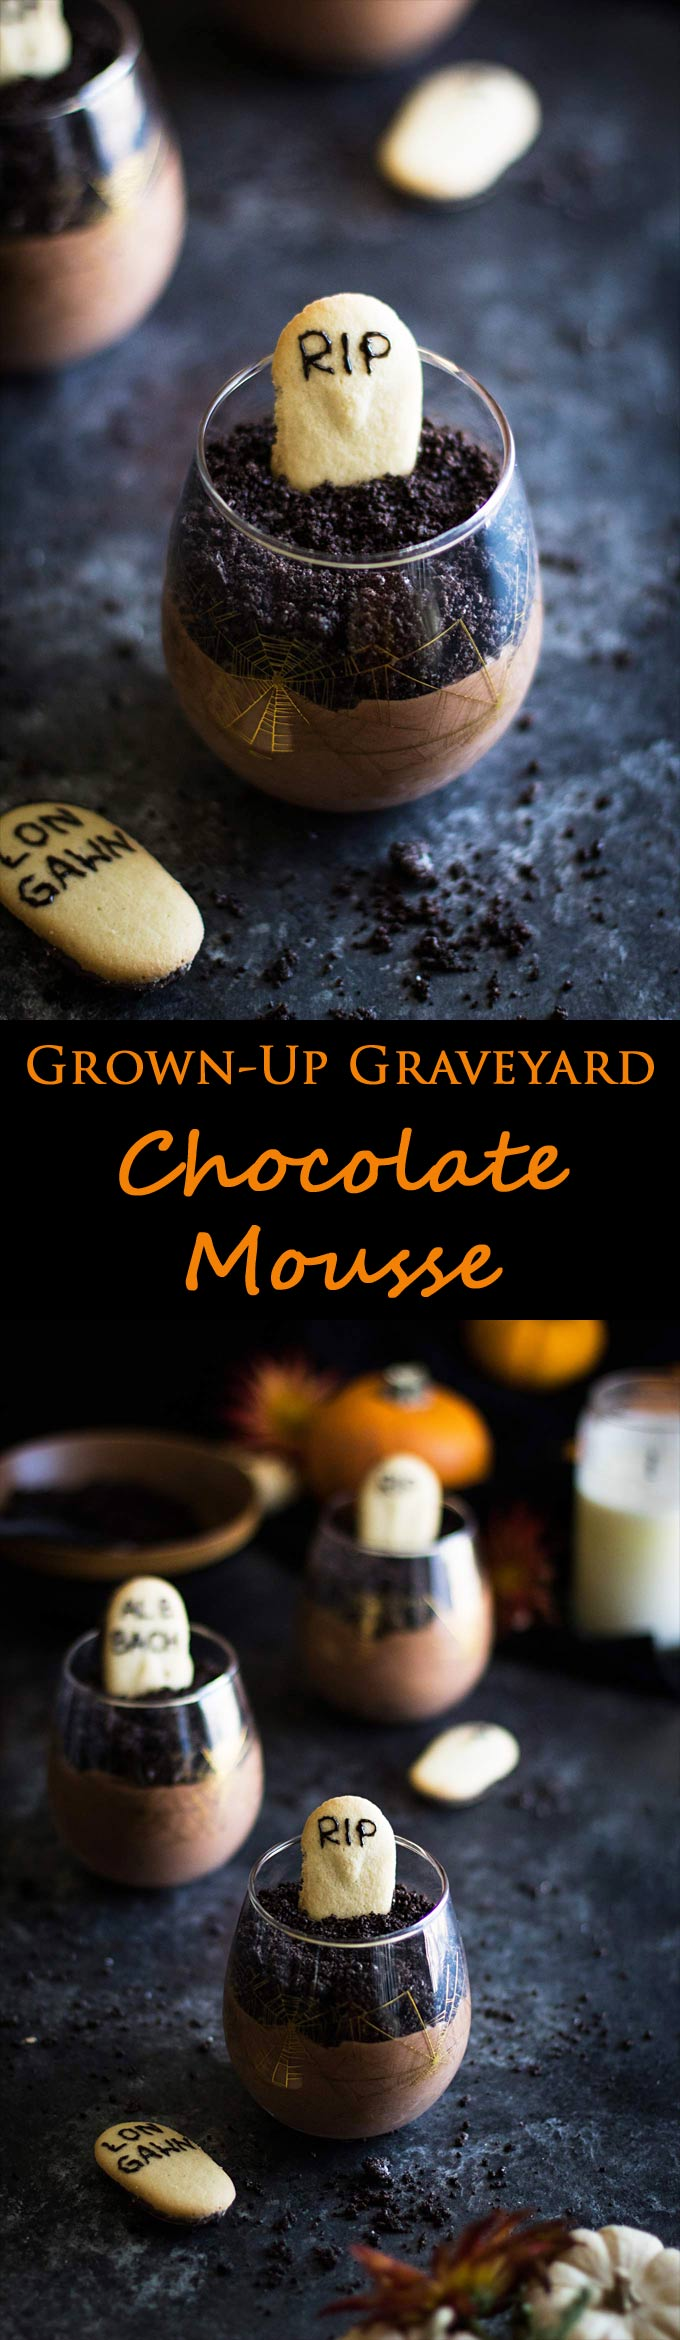 This graveyard chocolate mousse is sinfully rich, topped with oreo cookies, and quick and easy! Whip it up in less than 15 minutes for the perfect Halloween dessert!